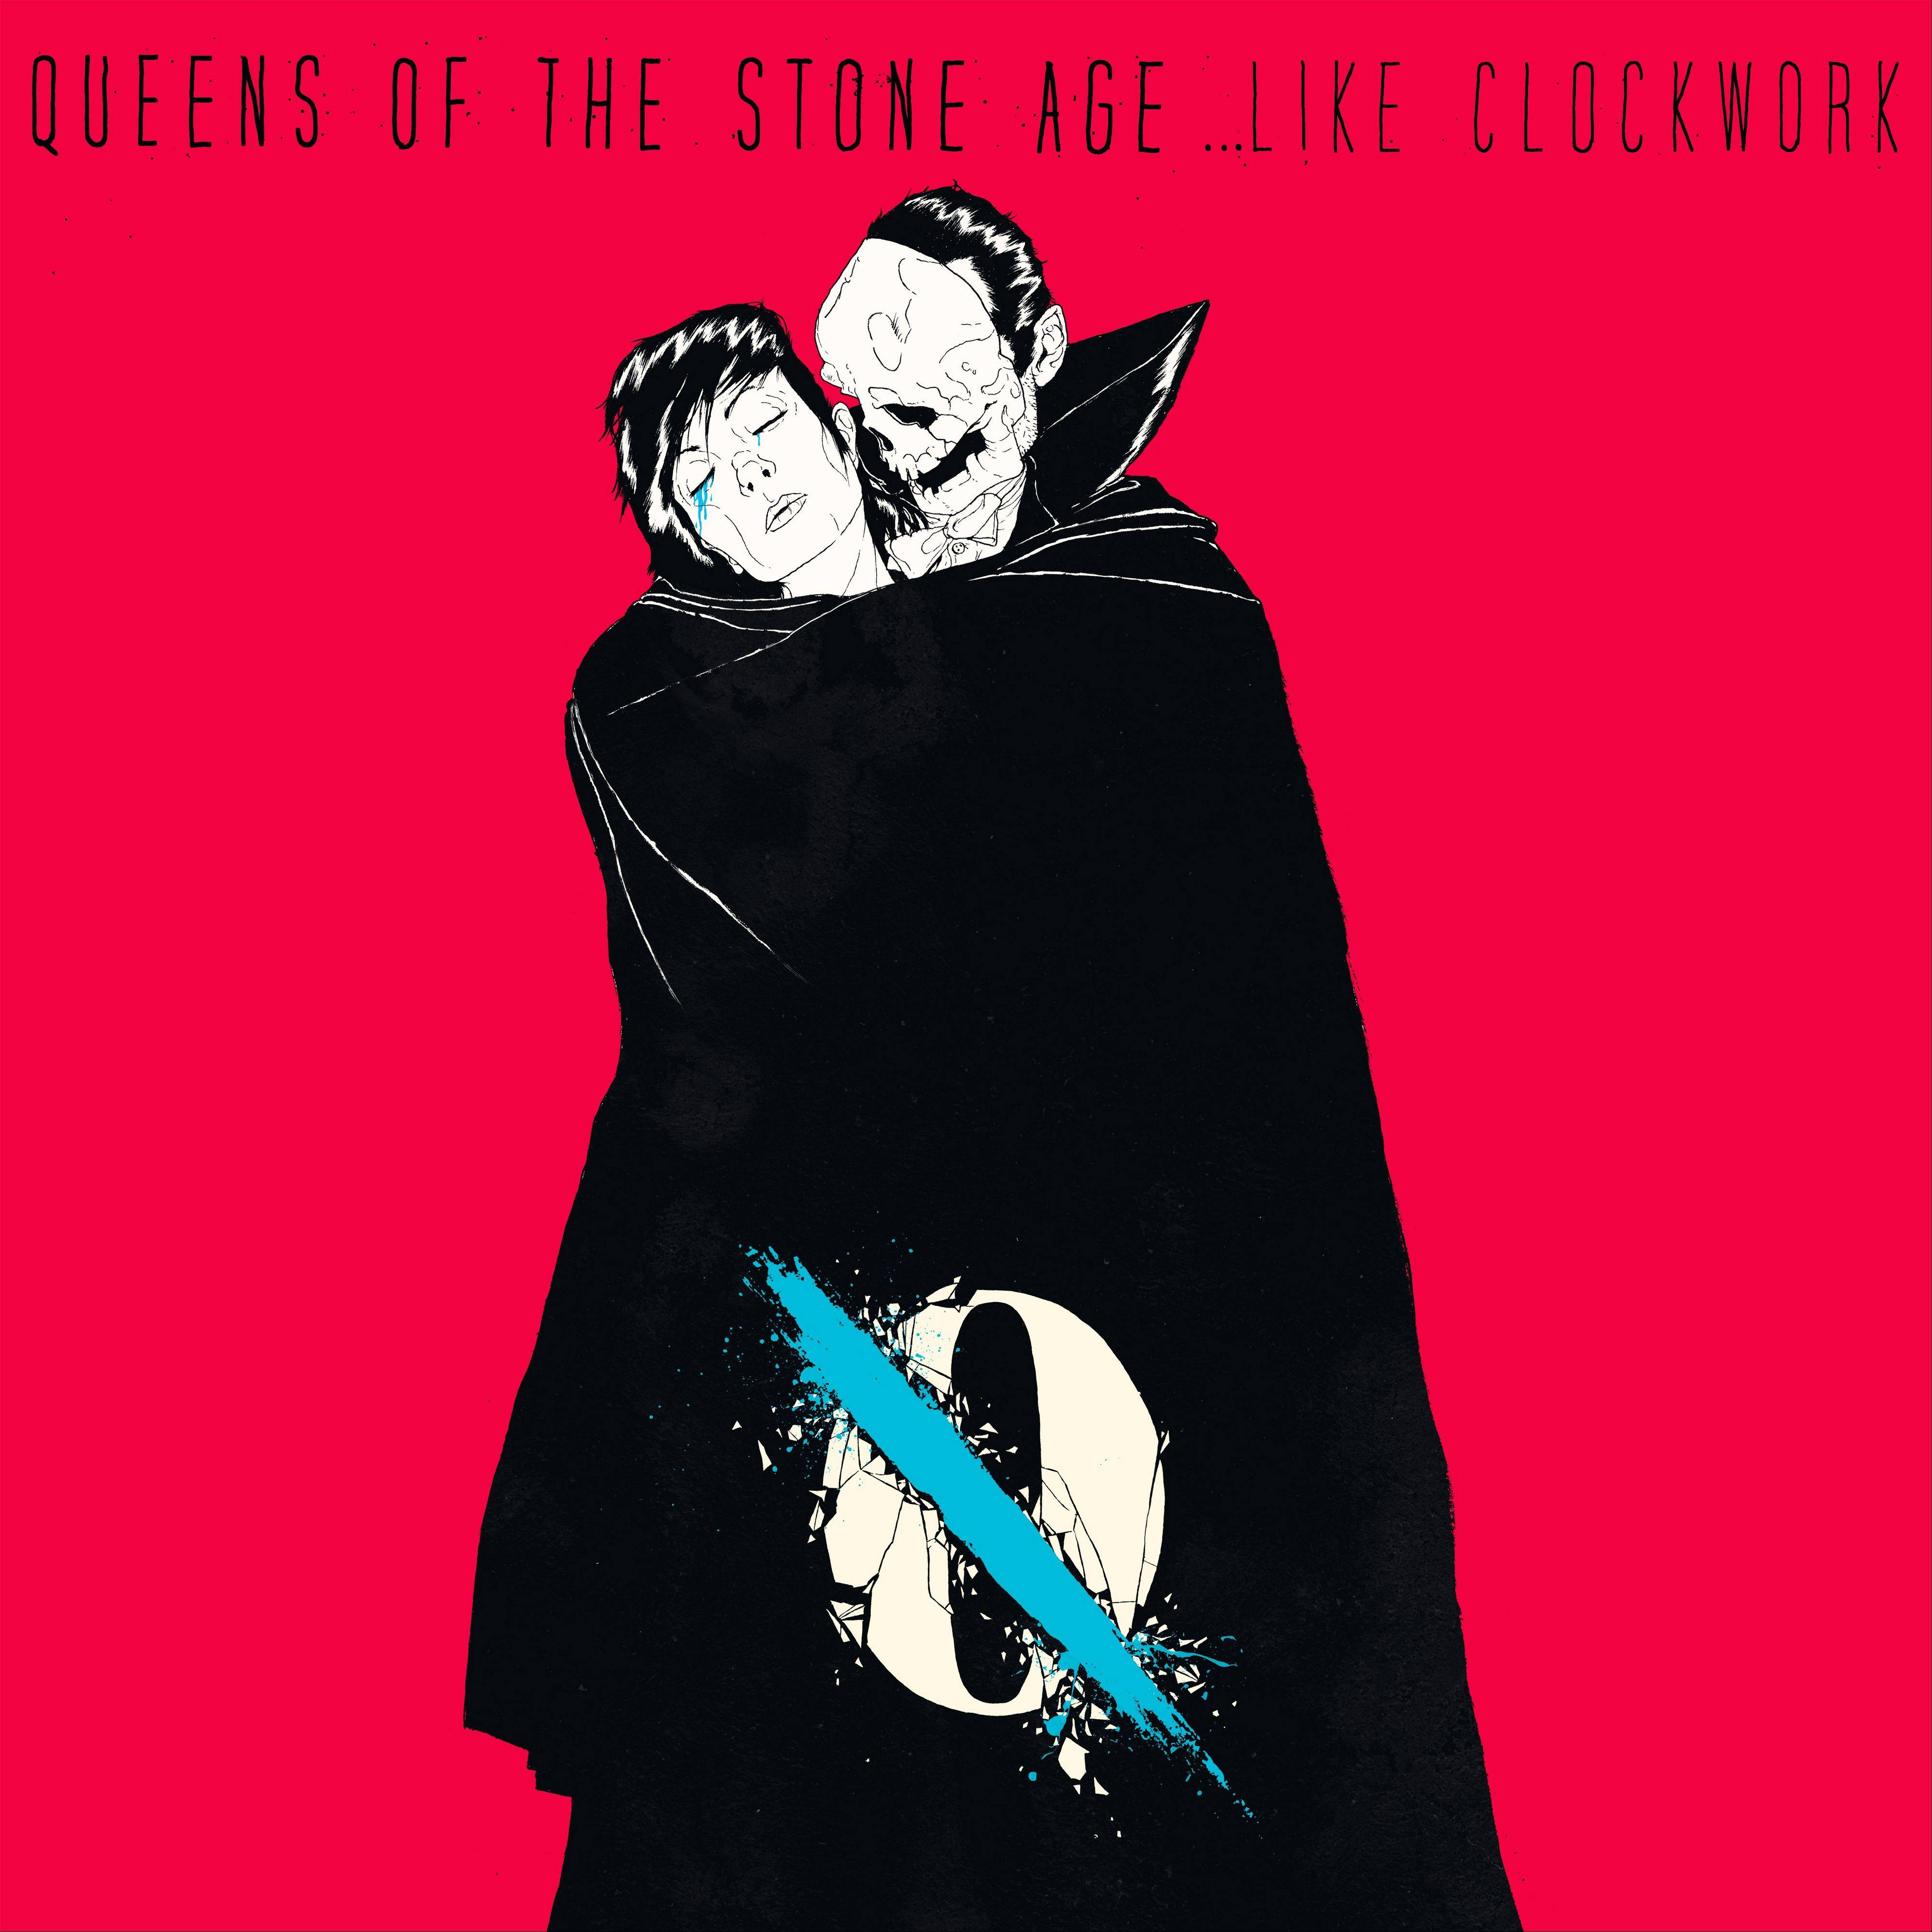 """... Like Clockwork"" by Queens of the Stone Age"